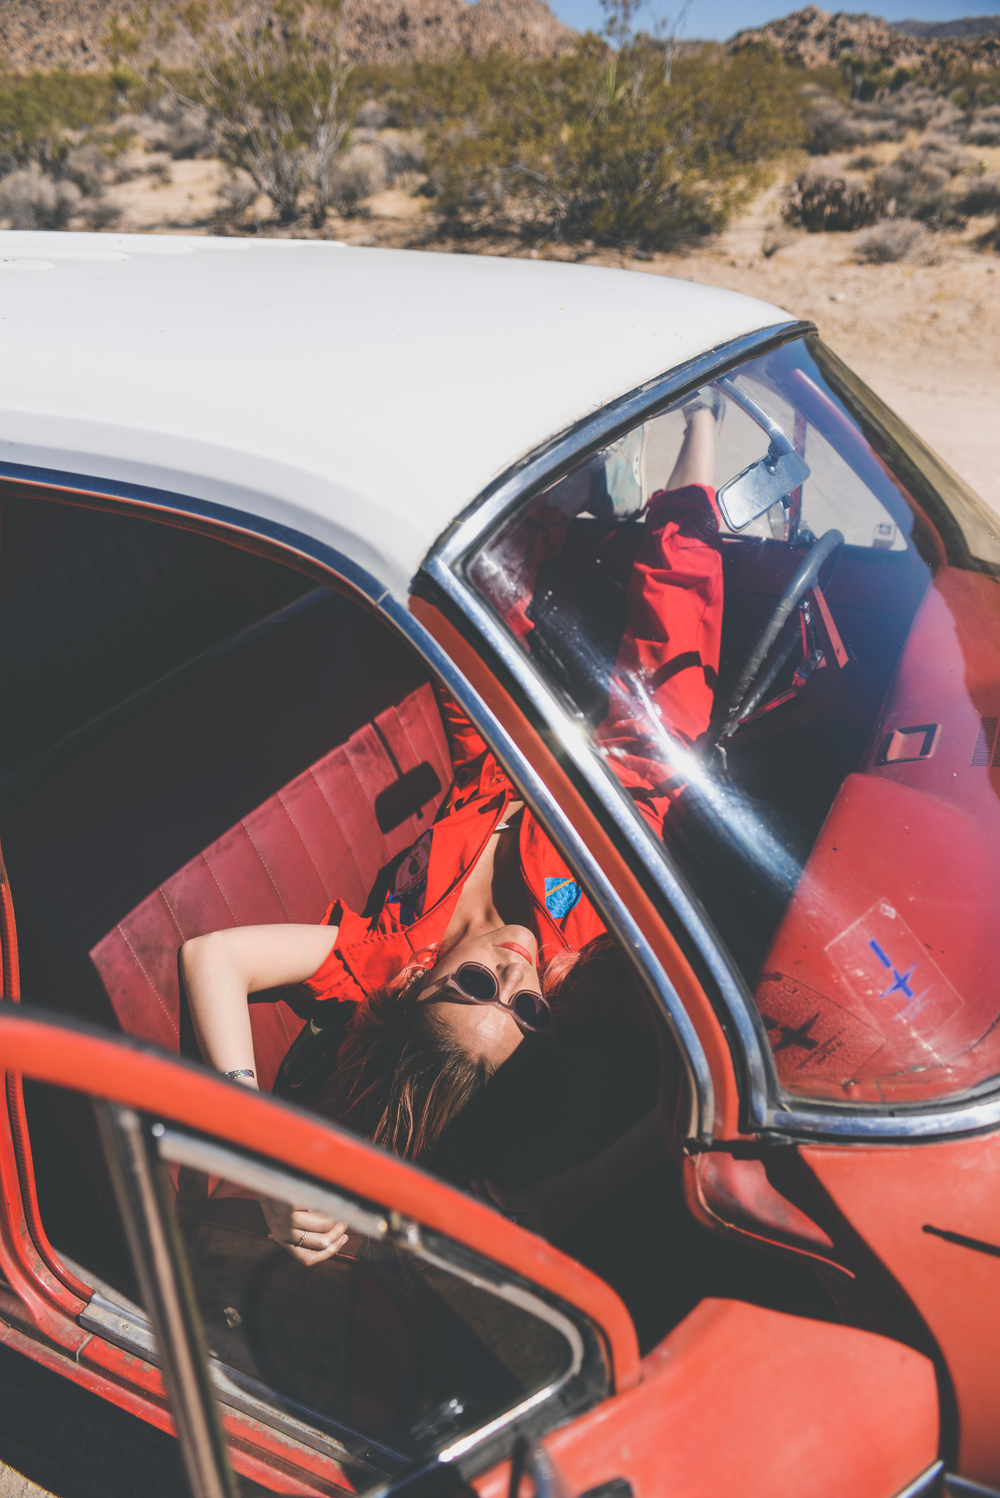 festival wear, vintage jumpsuit, red, festival outfit, ldv vintage, boho bunnie, joshua tree, desert vibes, ashley marie myers, festival gear, vintage outfits, vintage wear, boho, vintage car, red car,